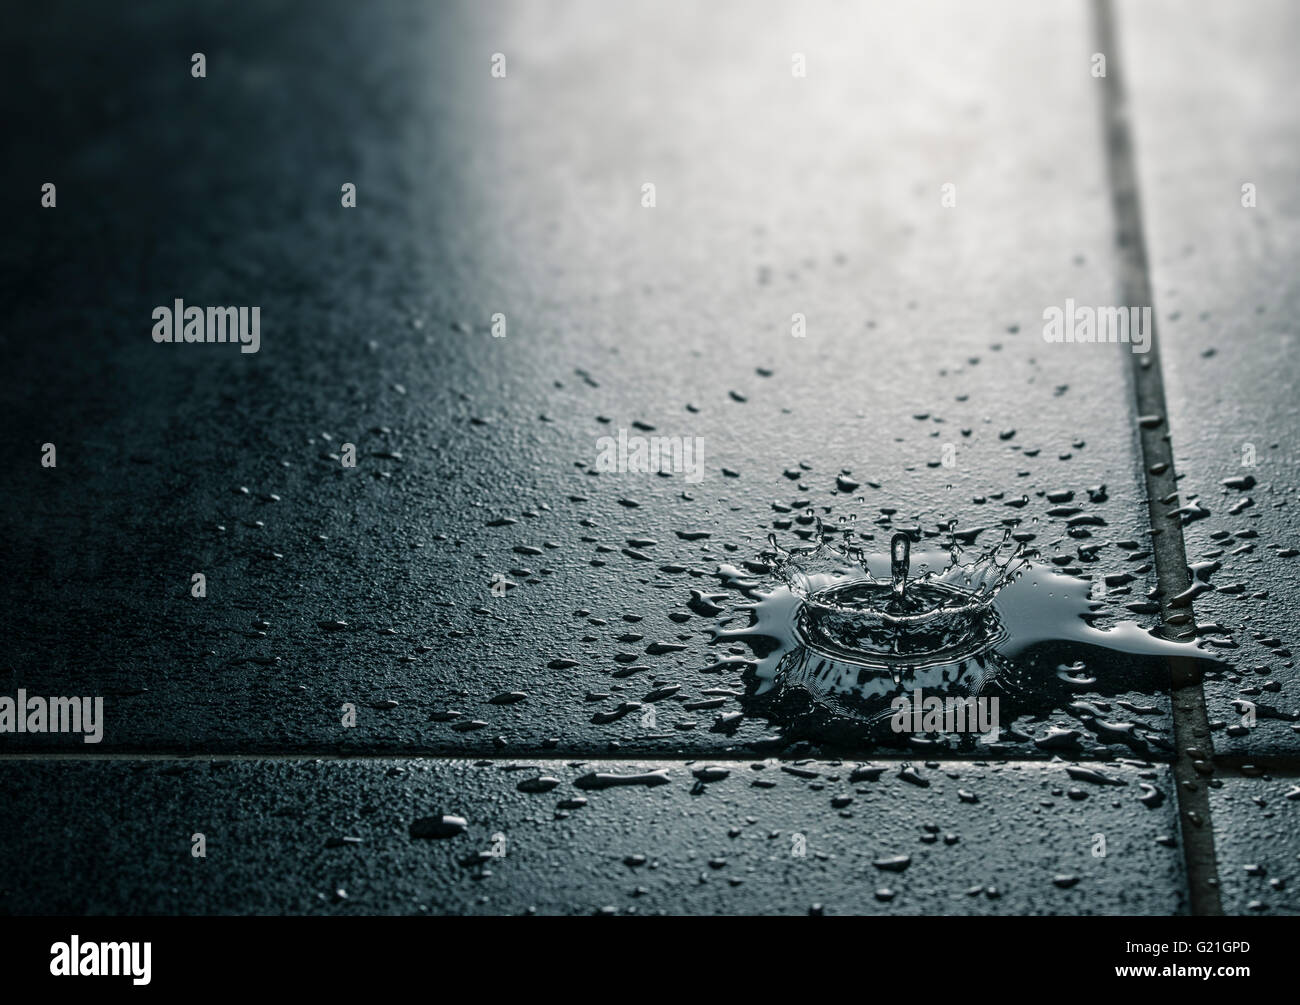 Water drips falling on a water resistant tile flooring. Black and blue tones with copyspace on the left side. Concept - Stock Image